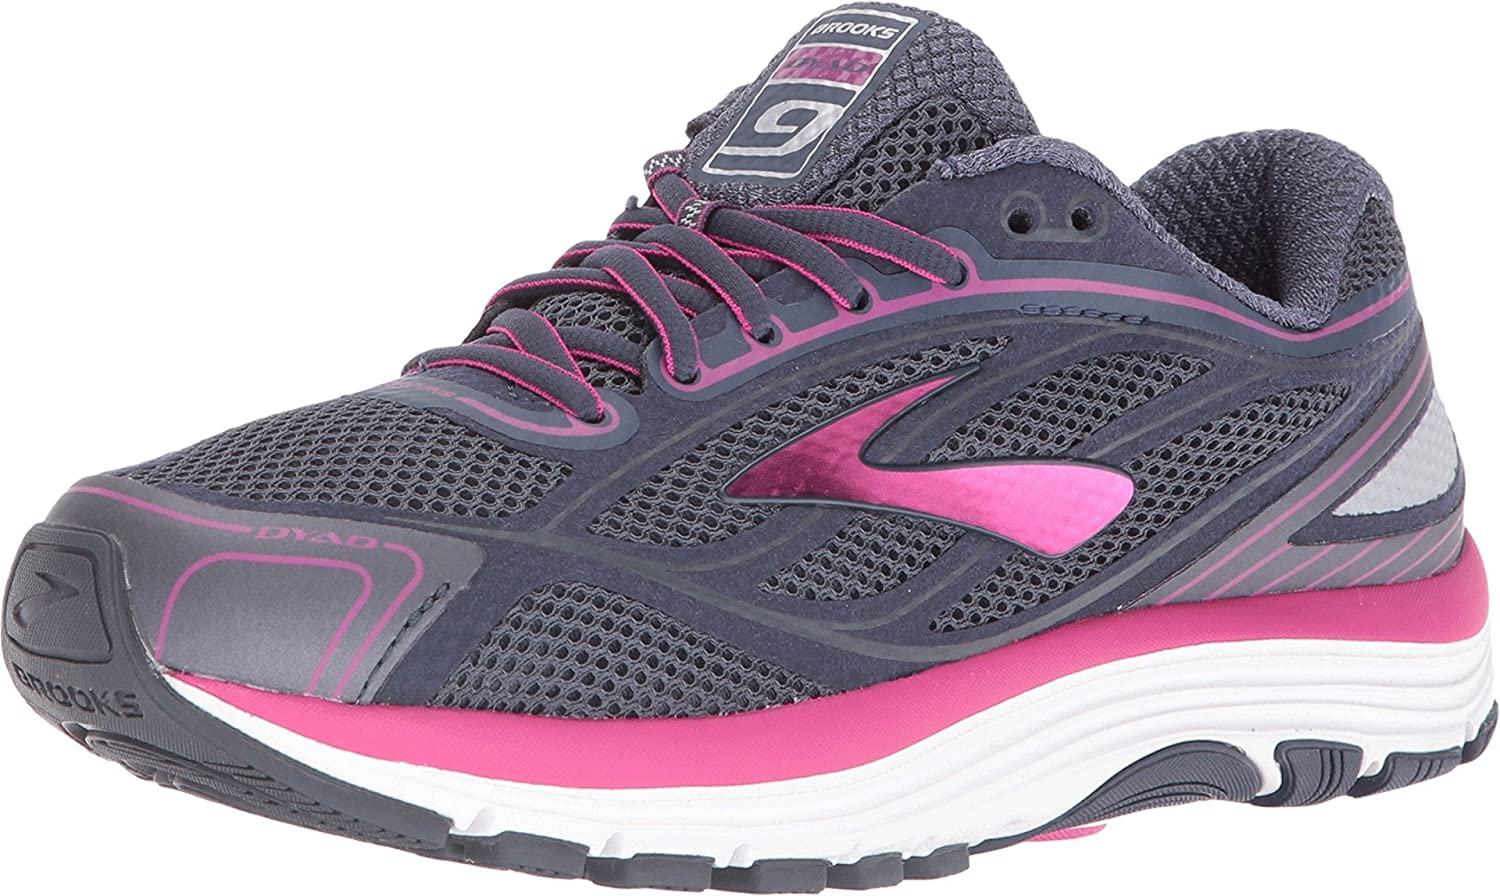 Men's Brooks Dyad 9